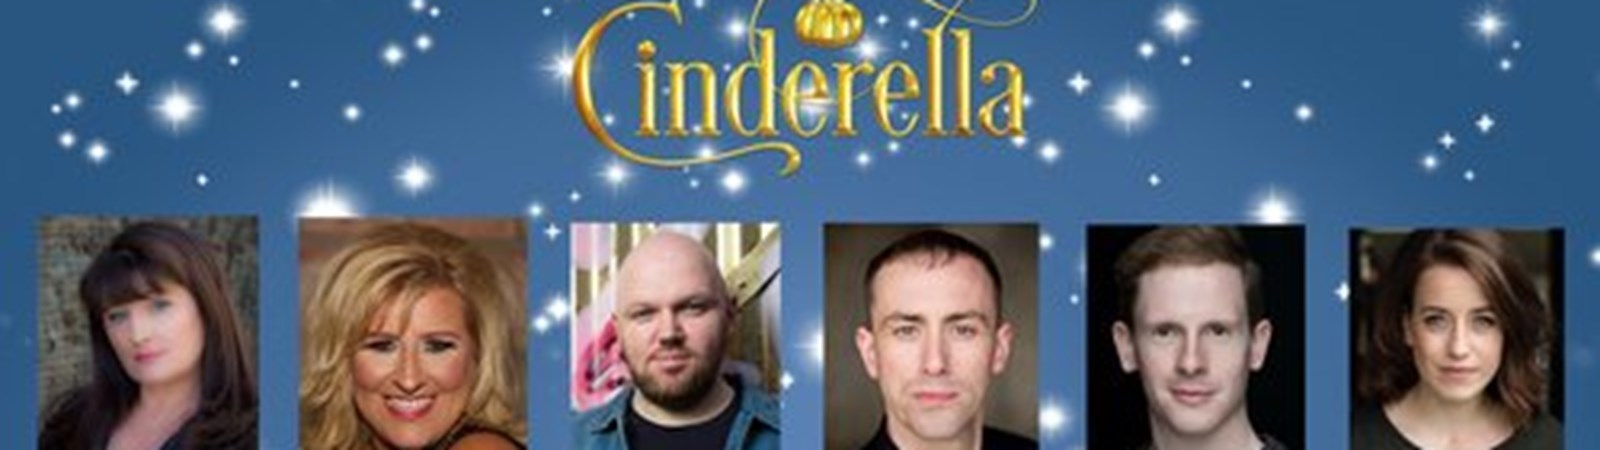 cinderella the pantomime FTH Theatre